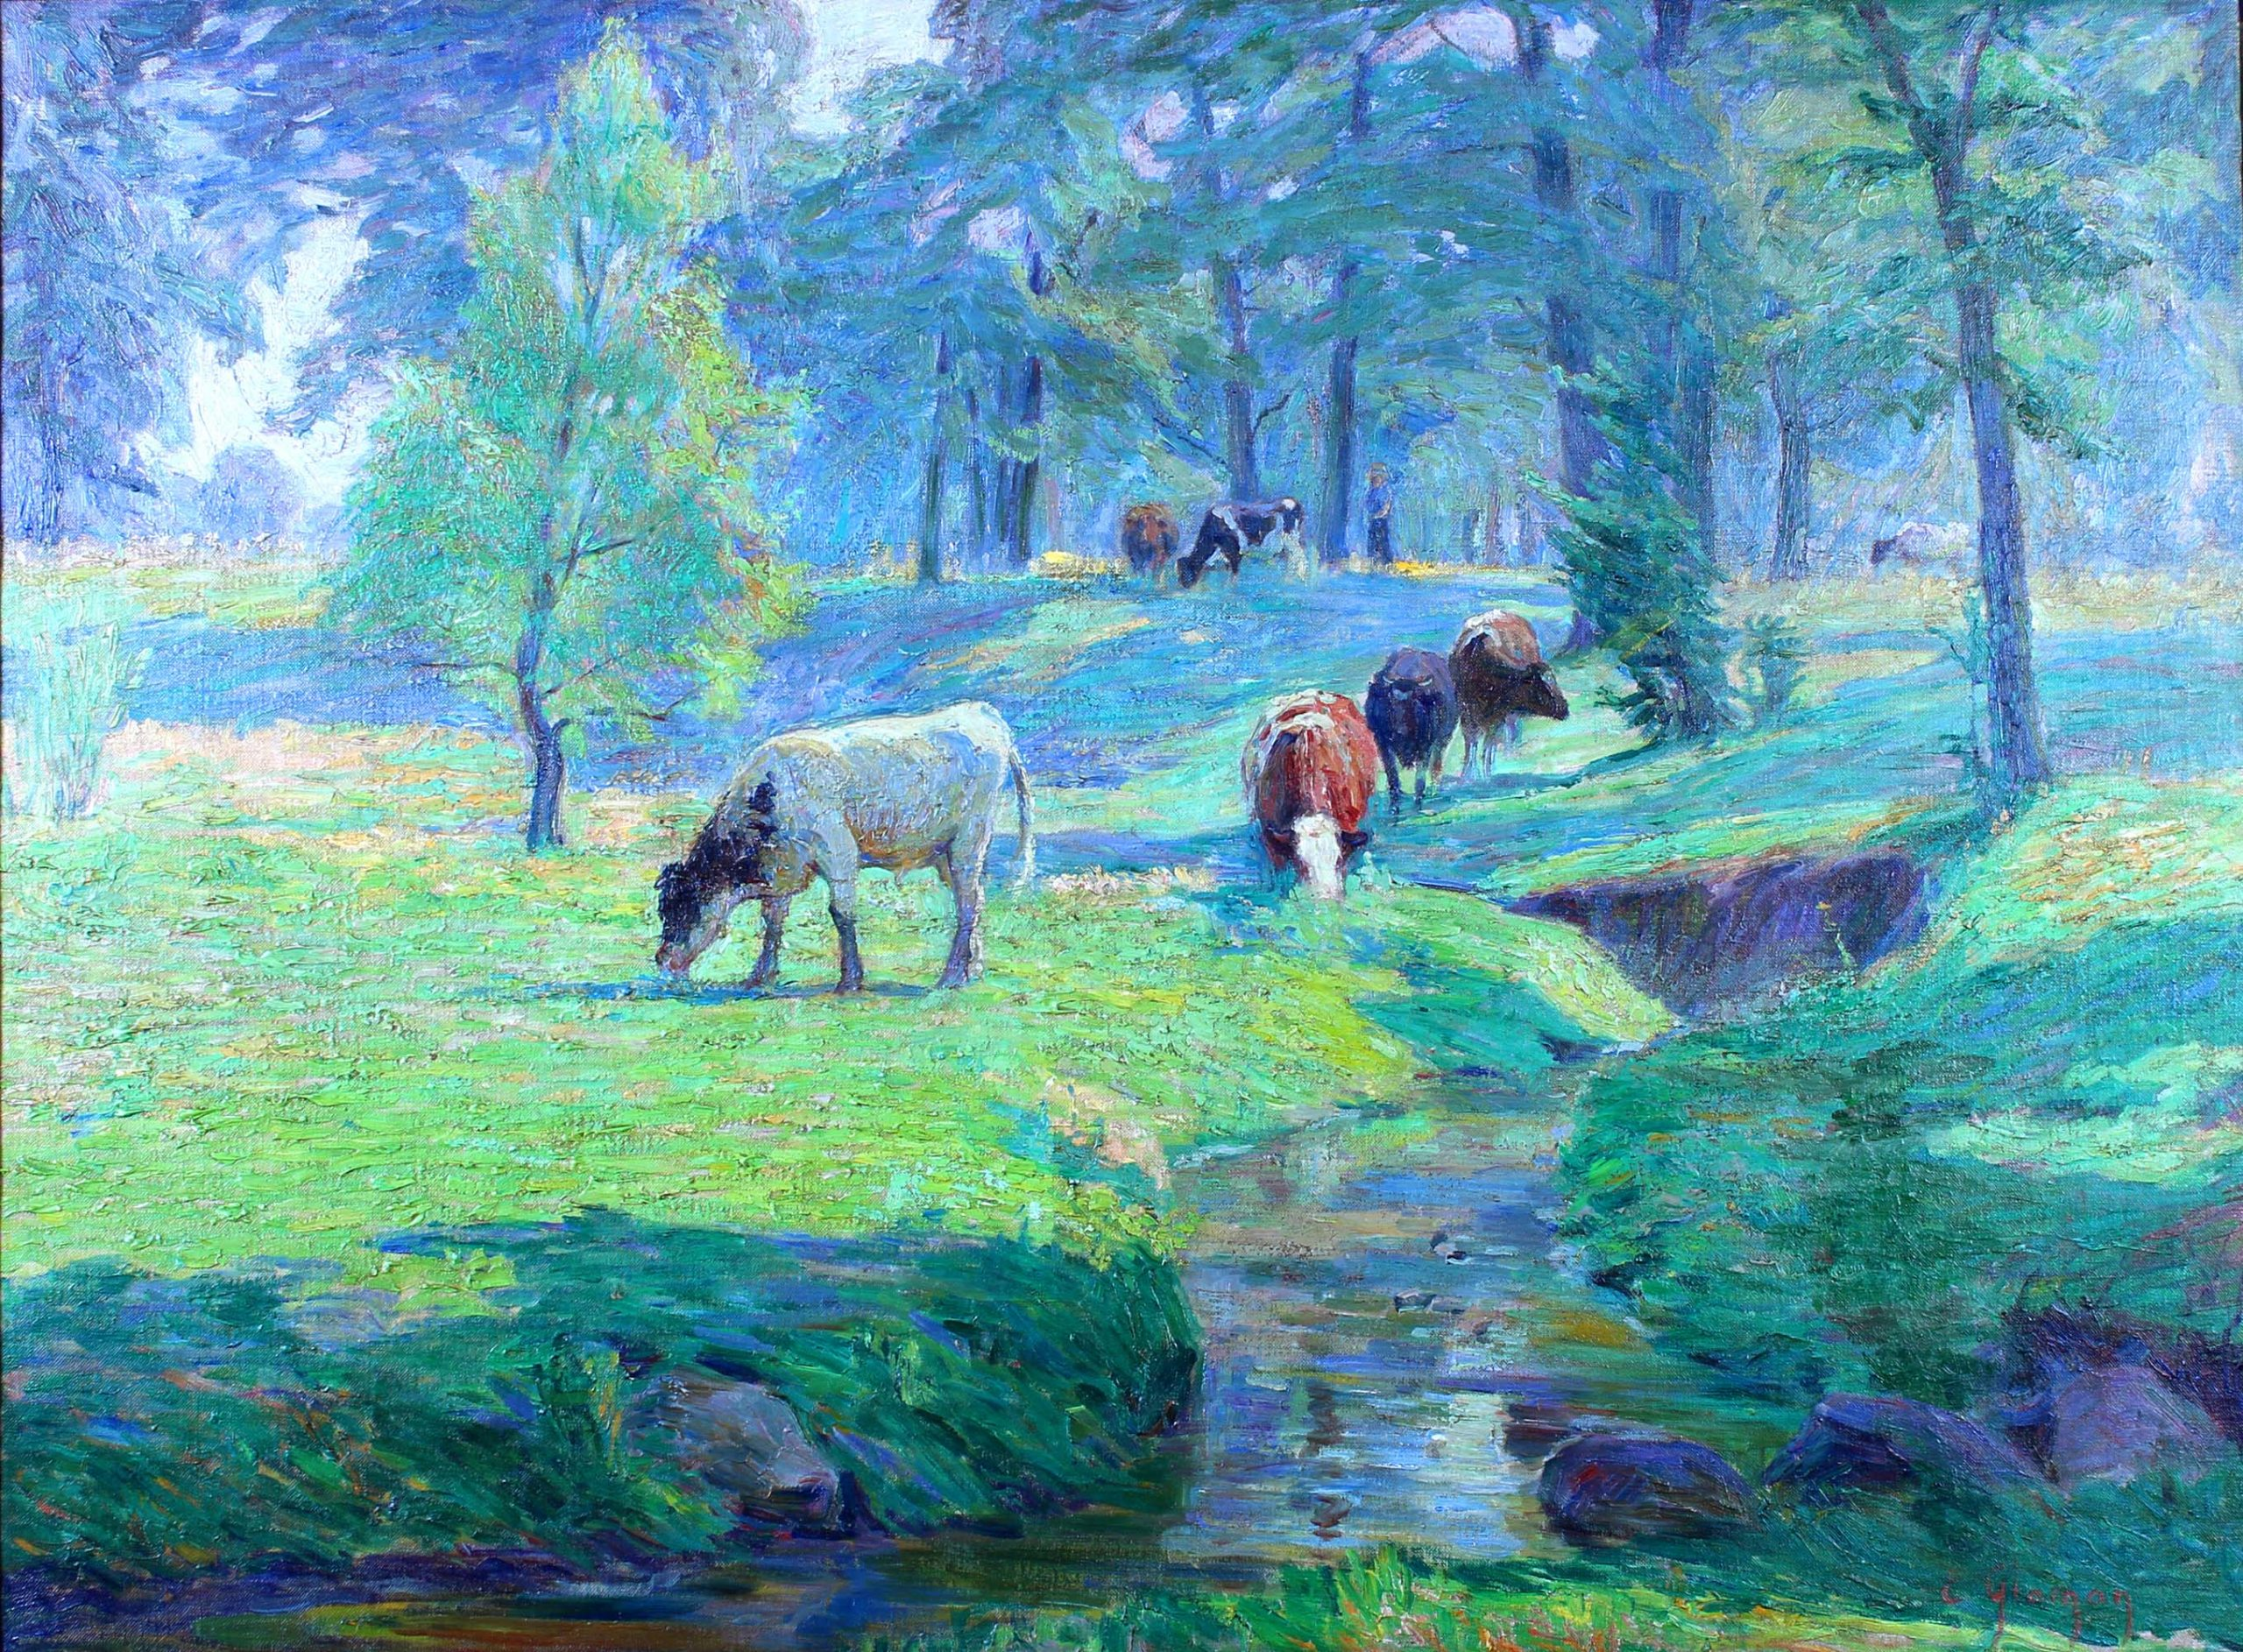 """The Pasture"" by Eugenie Glaman, Vanderpoel Art Association"